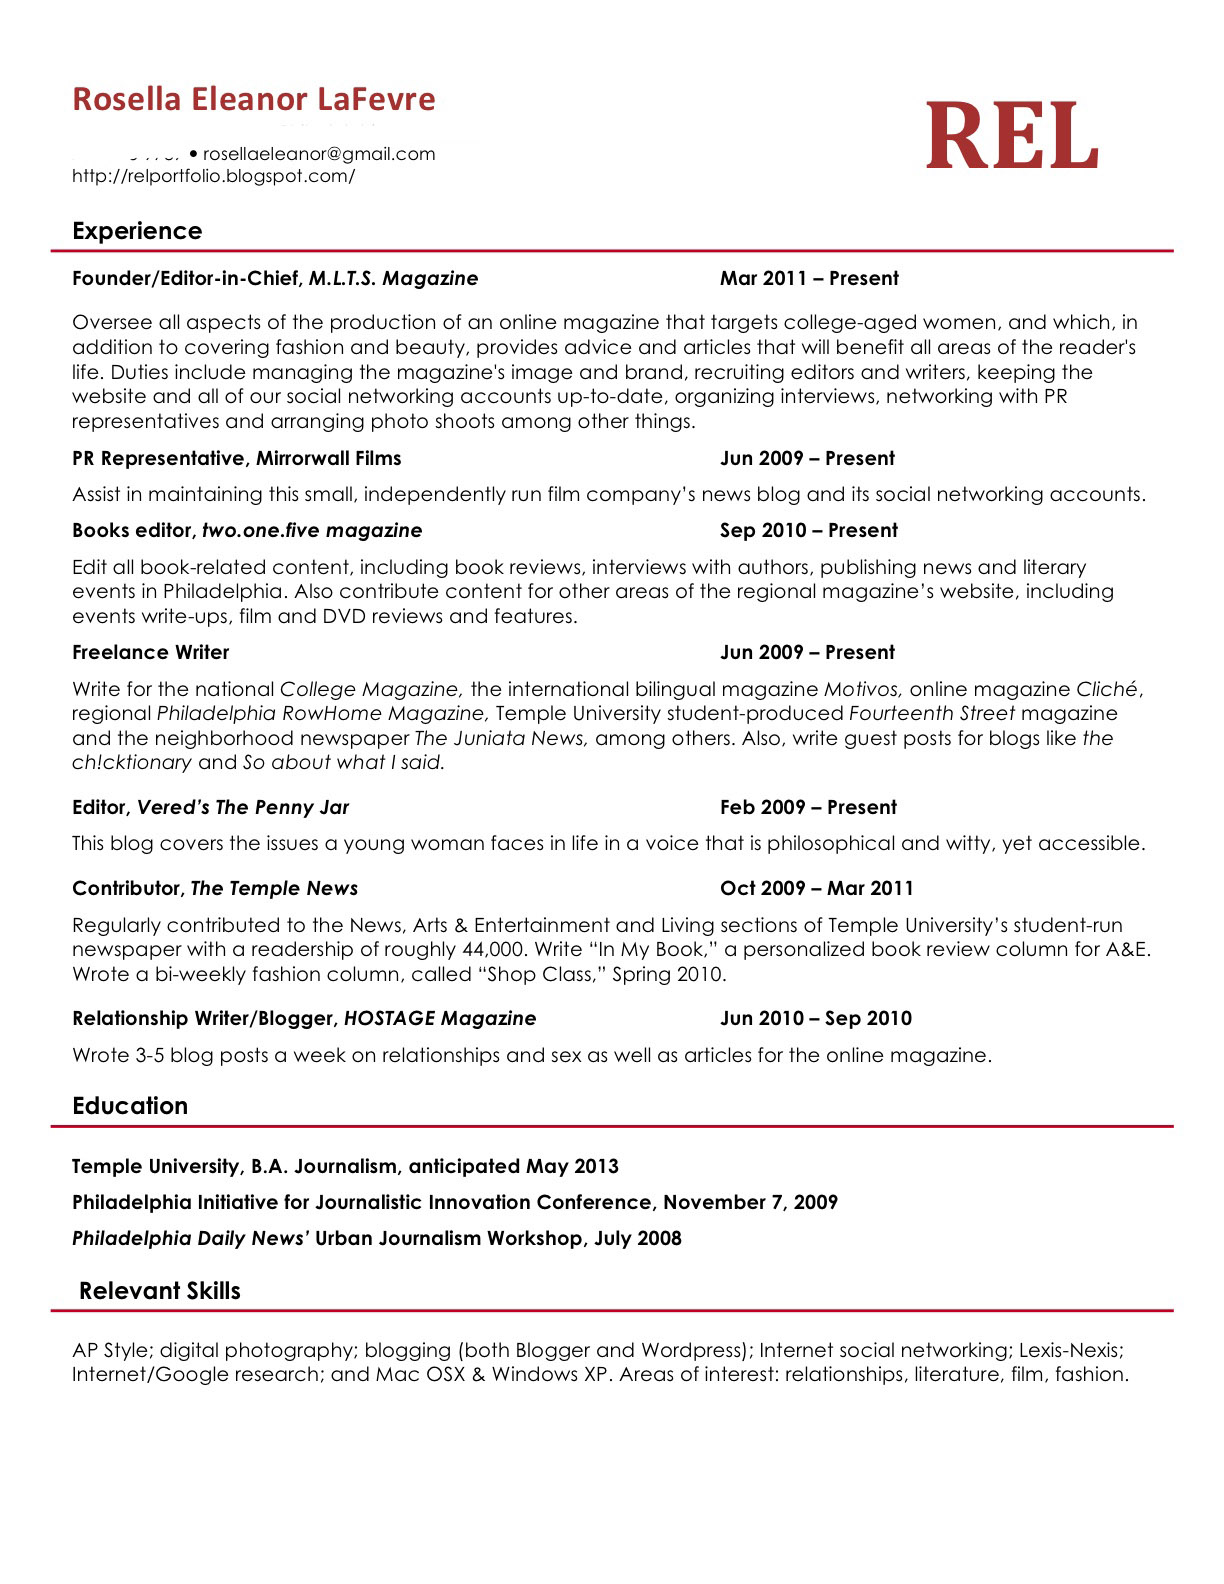 education resume objective resume examples education education oyulaw education resume objective resume examples education education oyulaw good resume - Great Objectives For Resumes